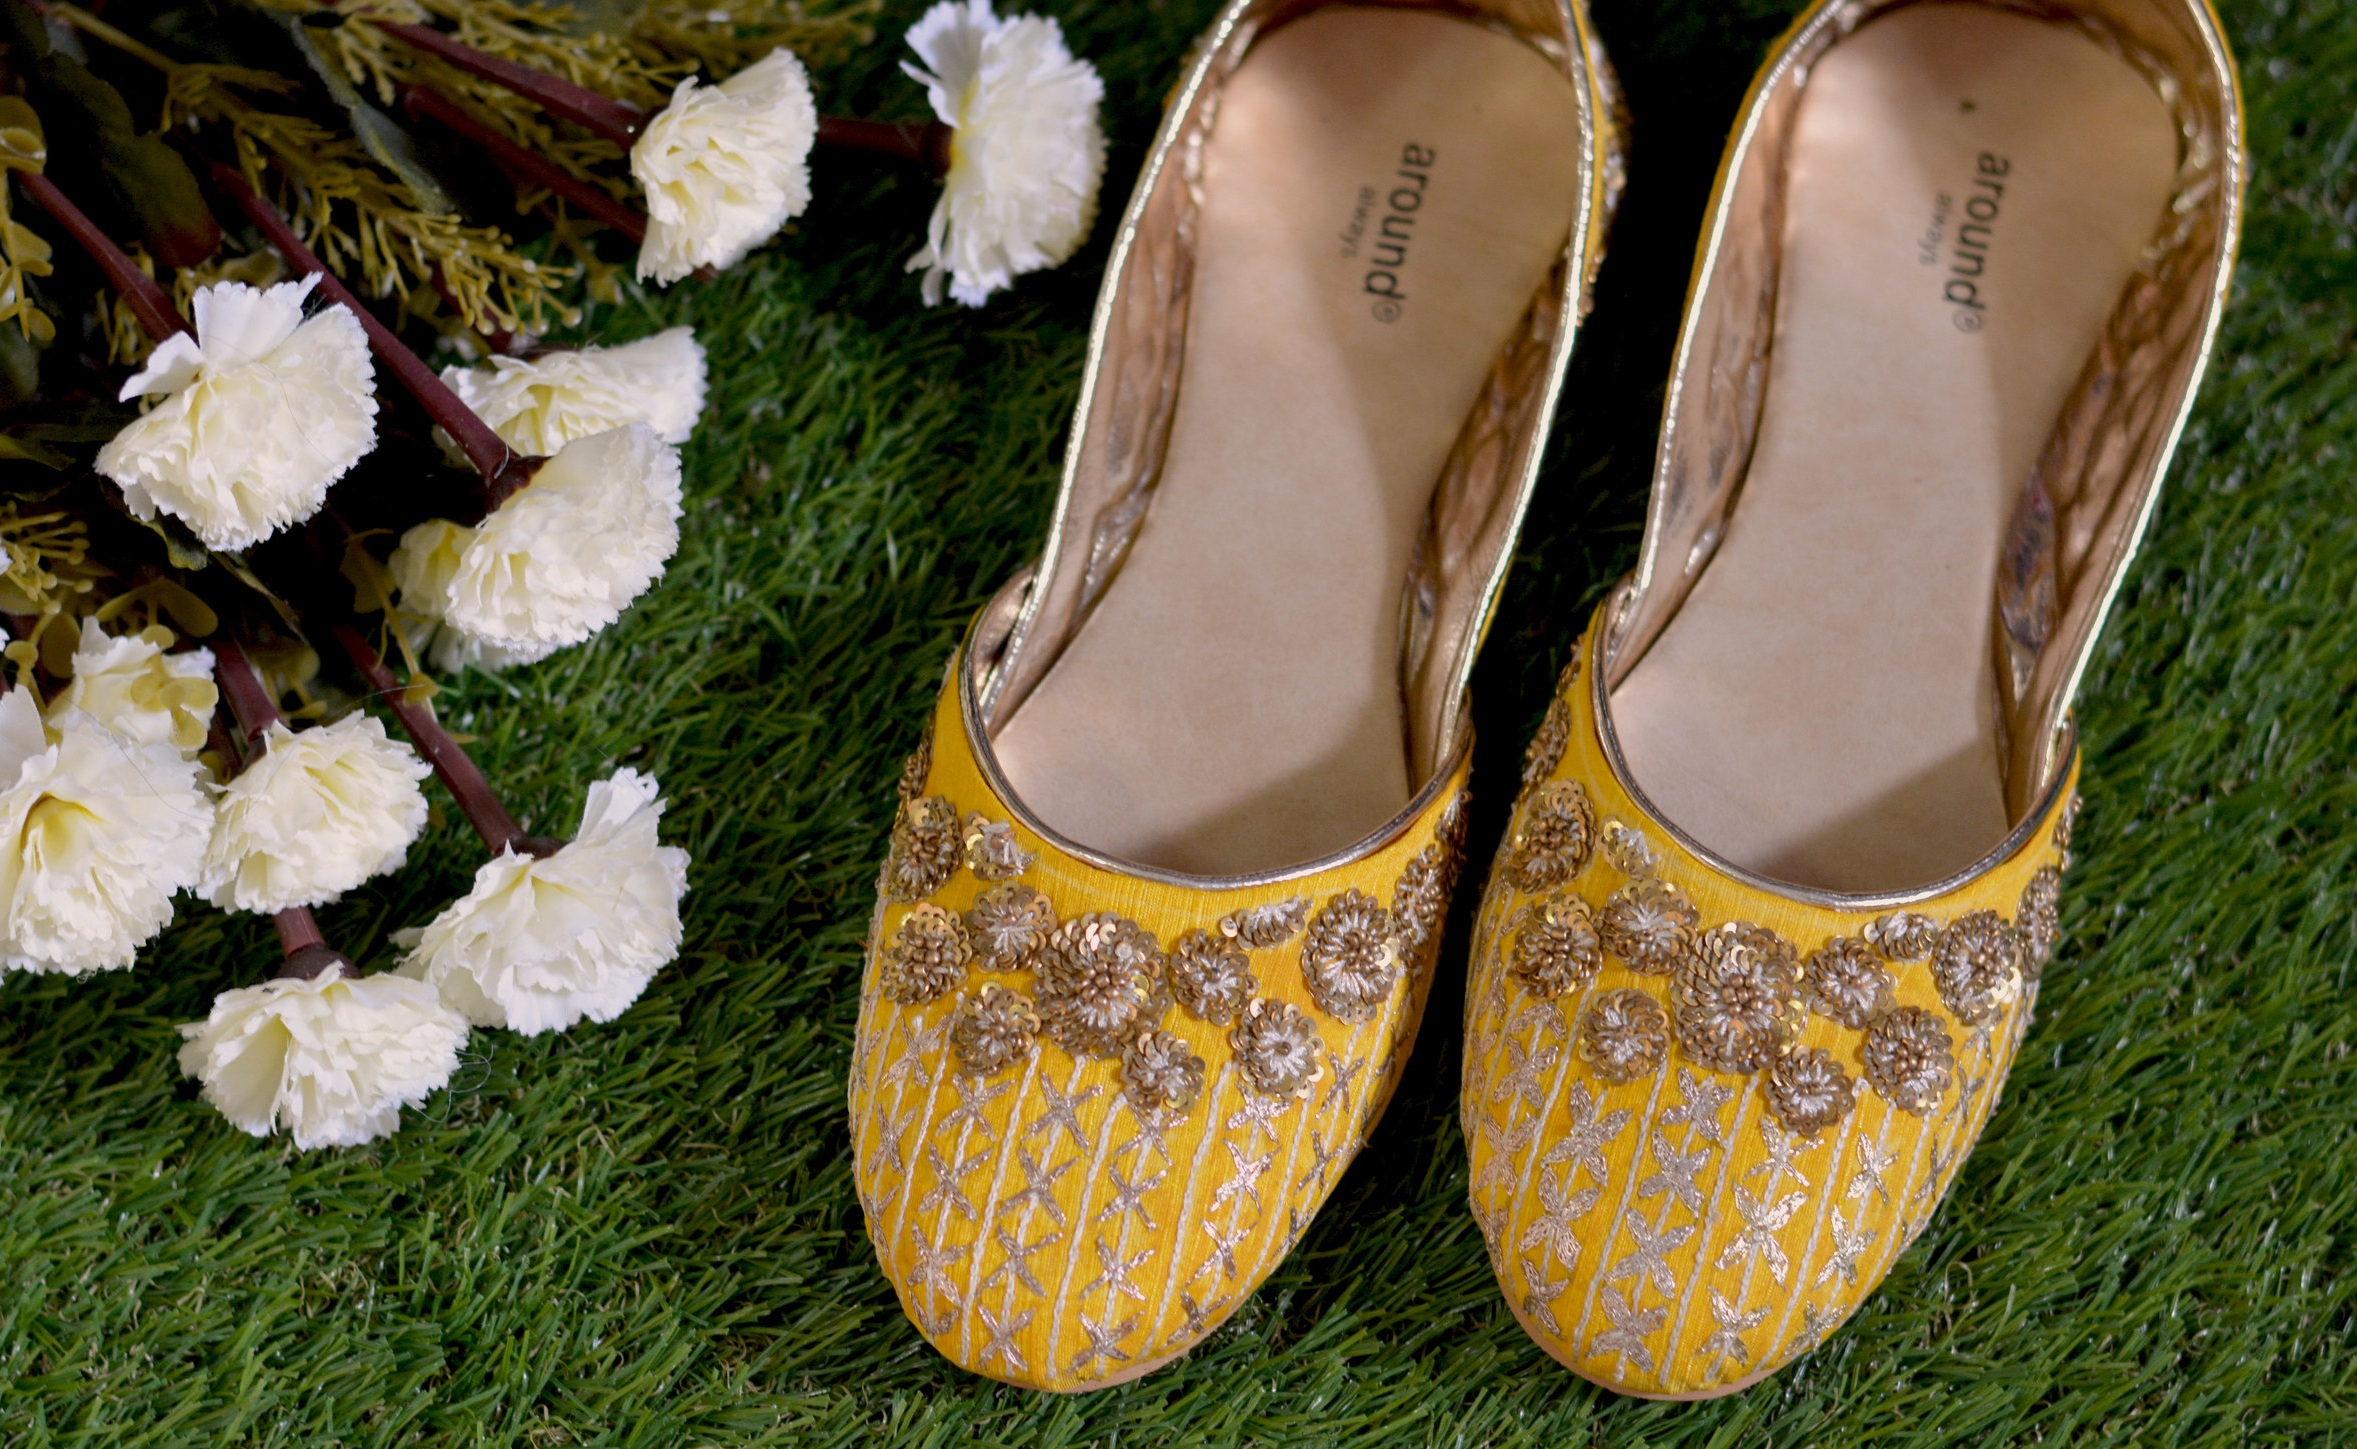 Summer Romance - The deft touch of golden in a sea of yellow, just enough to brighten up your day